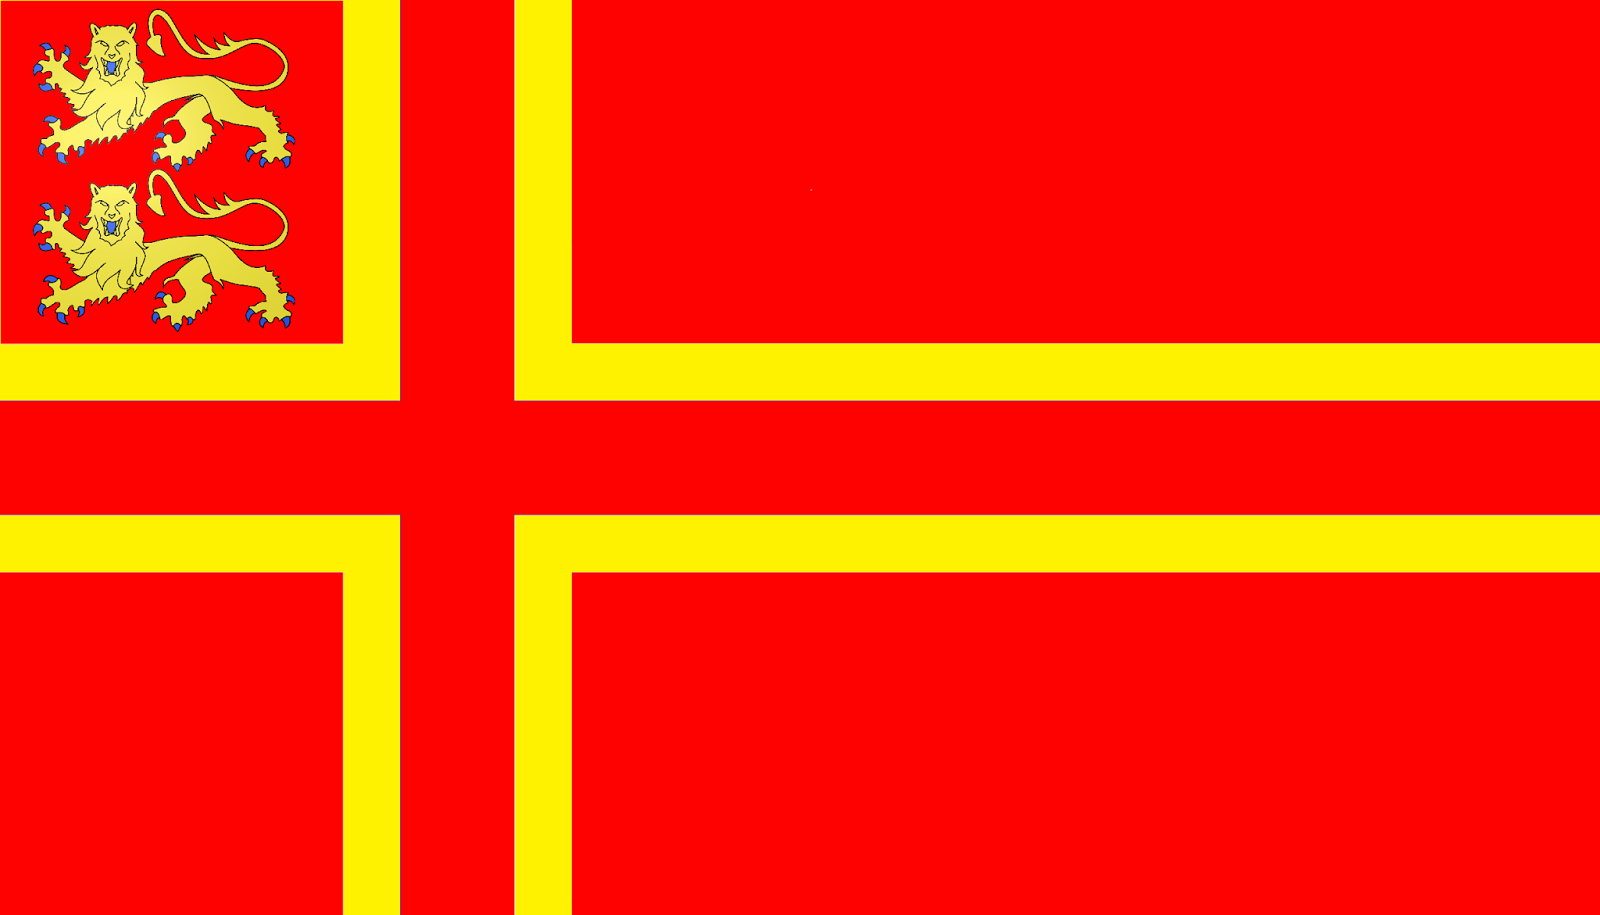 heretic rebel a thing to flout denmark starts trend for nordic